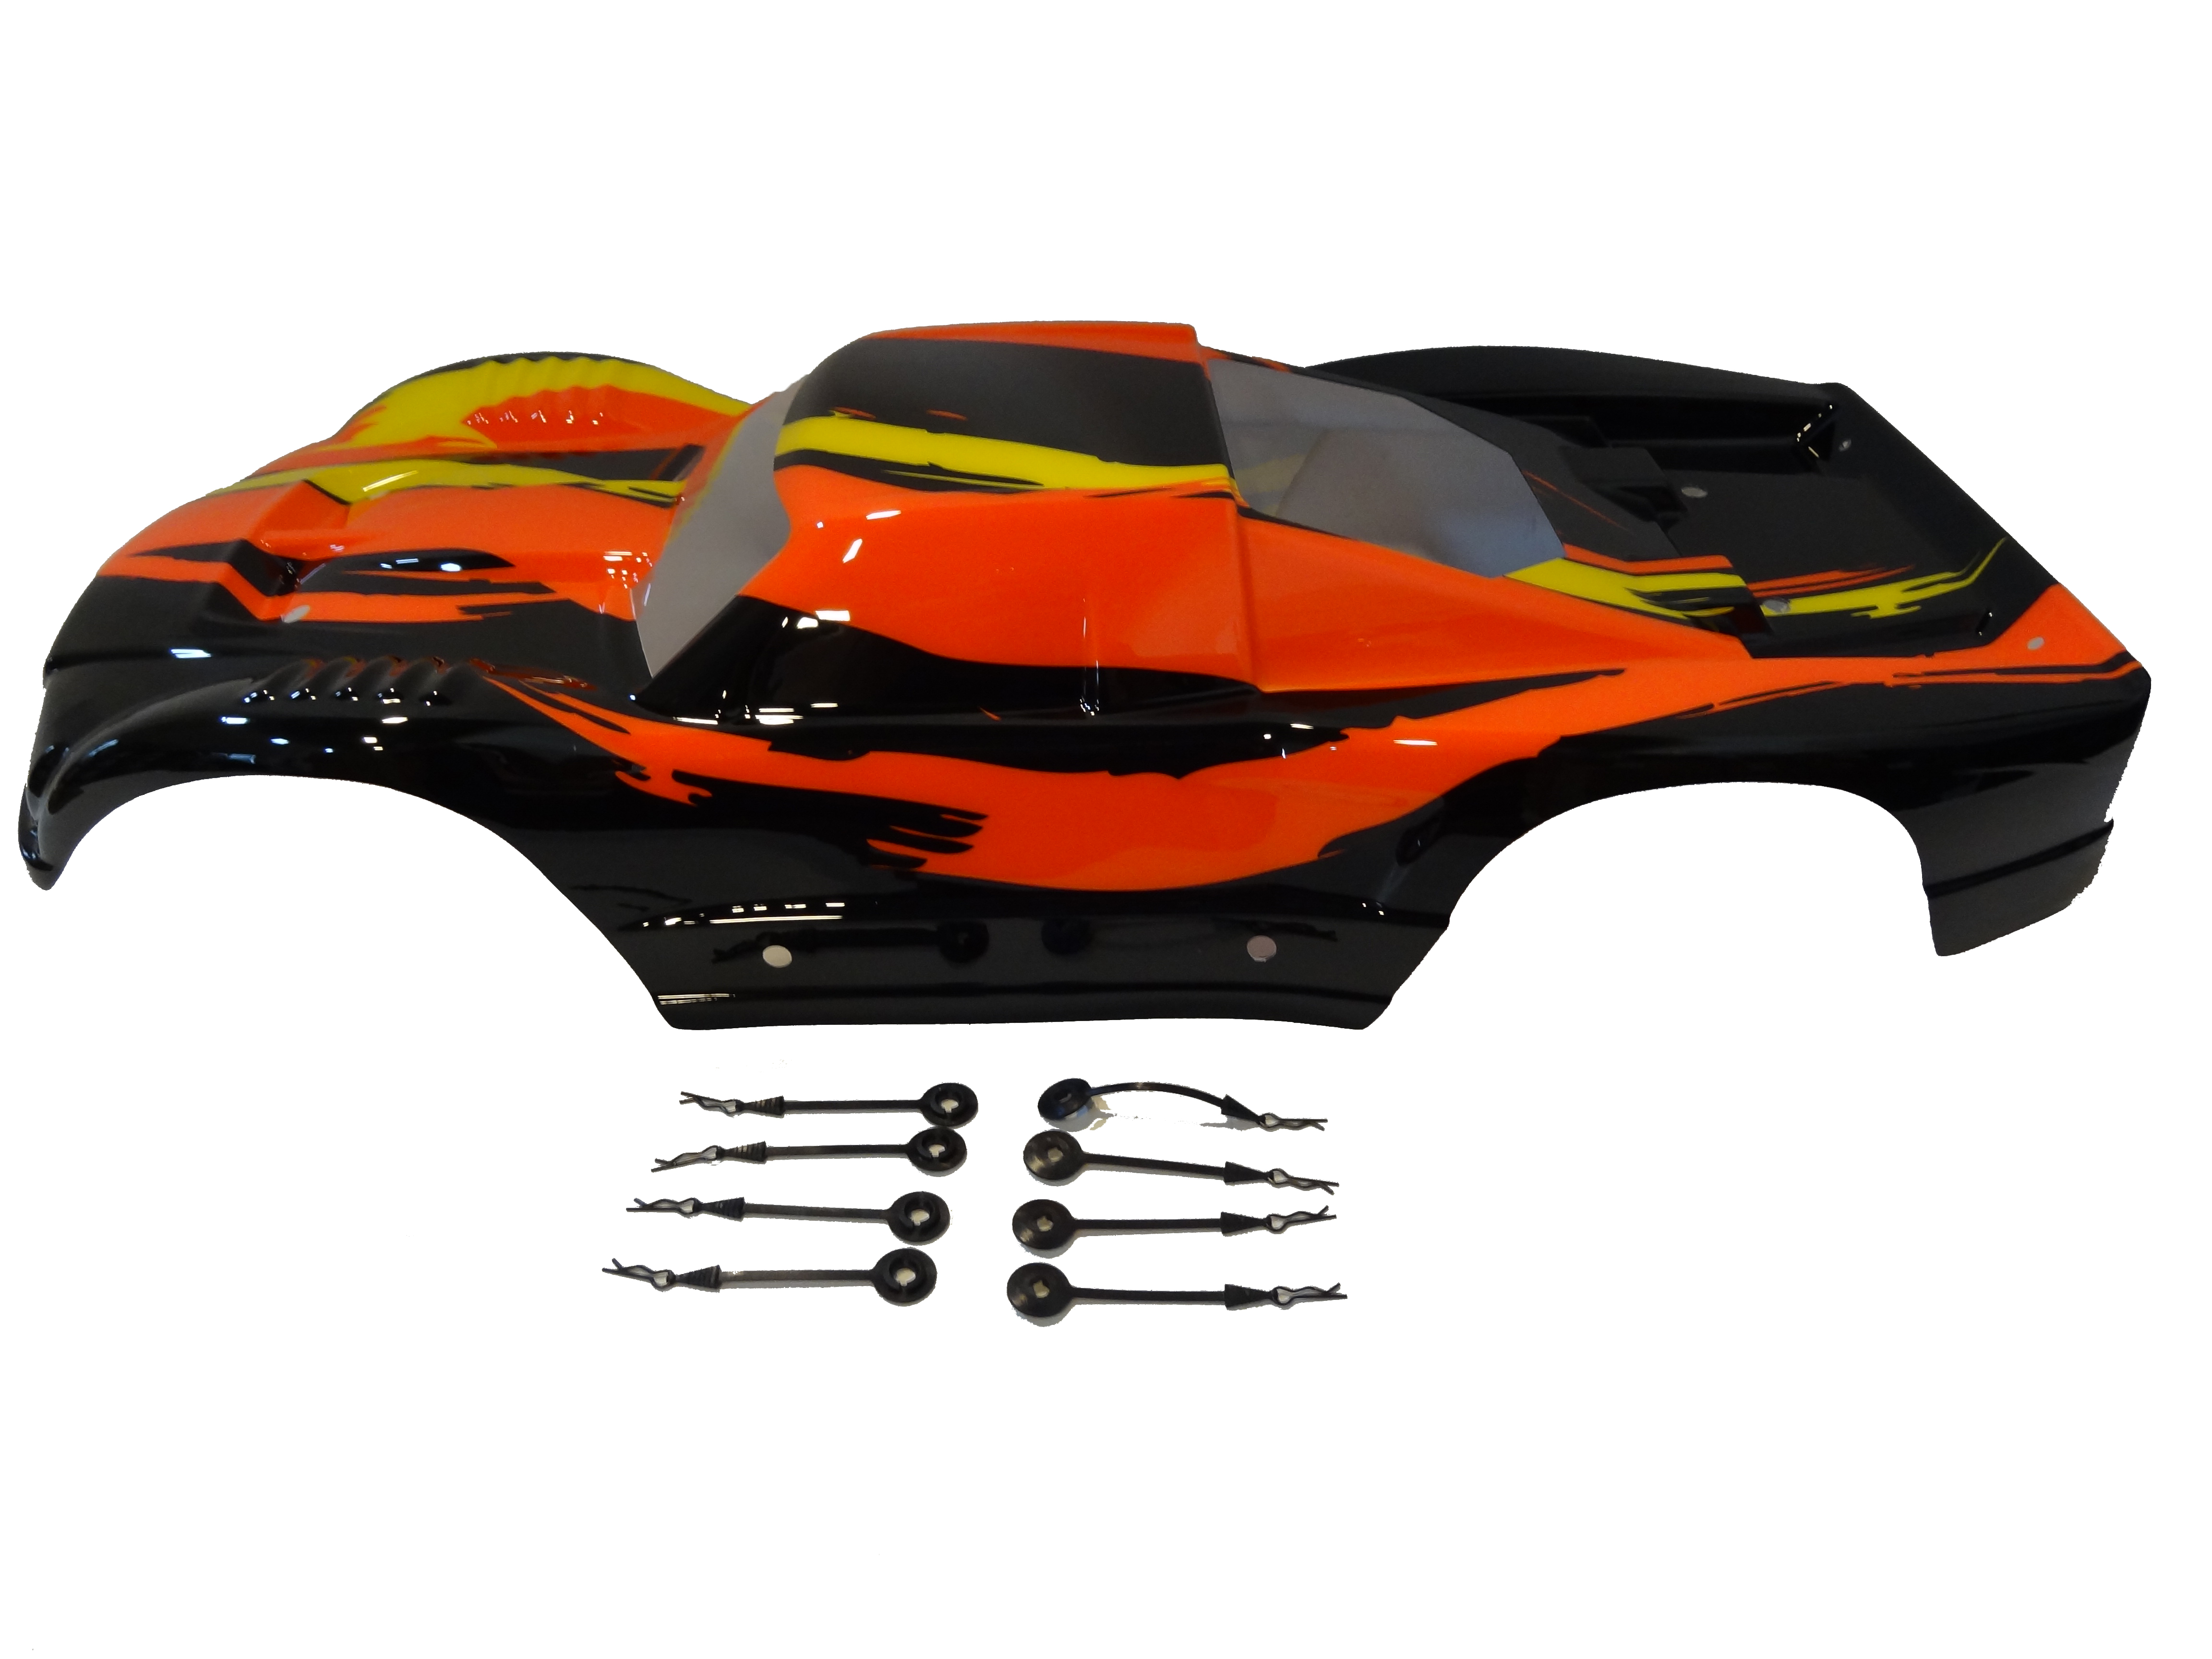 Terminator Truck Body Very Strong PC Material (black / orange) MAX5T, HPI Baja 5T style